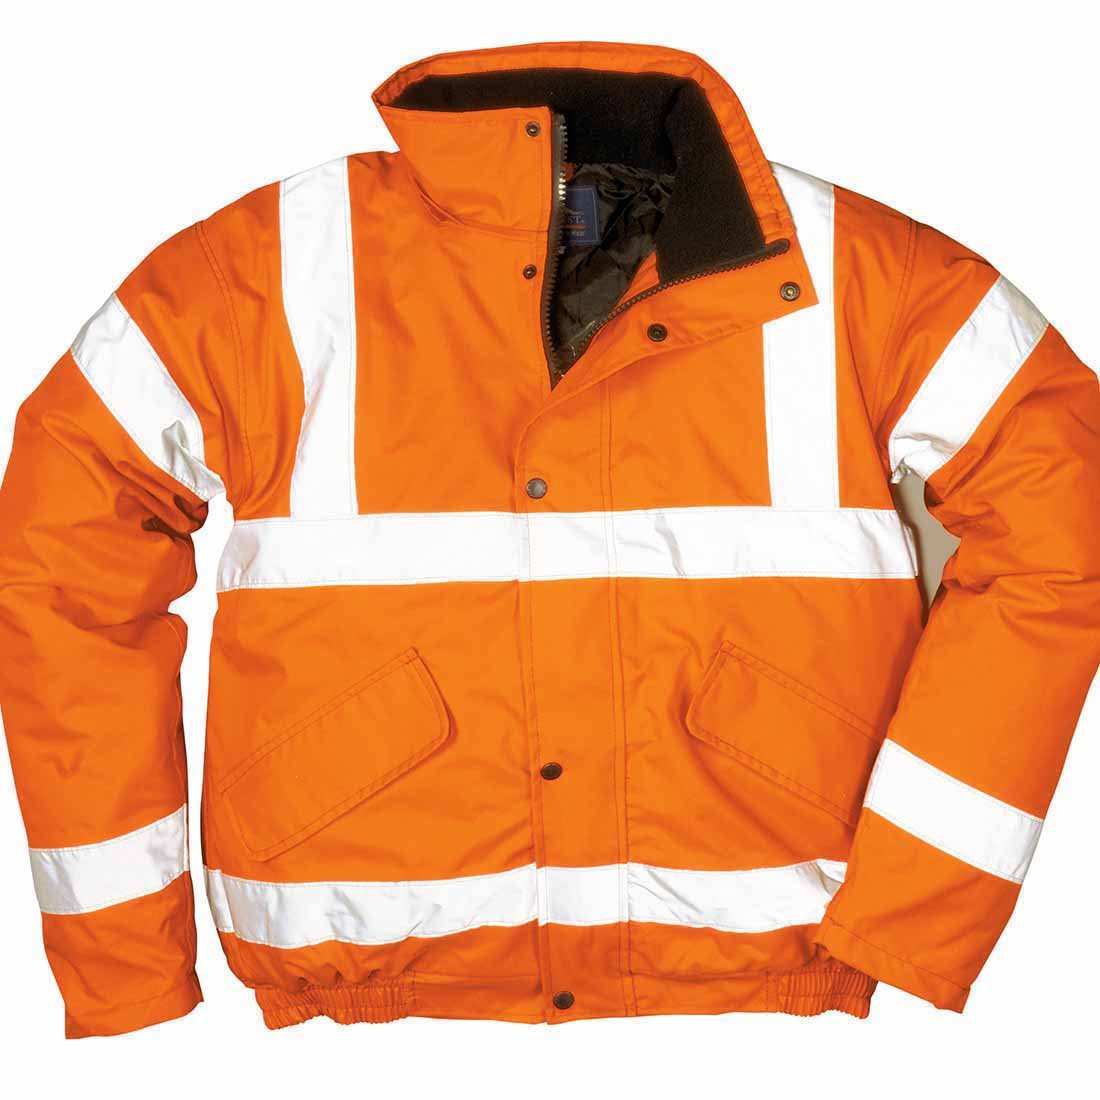 Portwest S463RERXXXL Hi-Vis Bomber Jacket, Regular, Size 3X-Large, Red Portwest Clothing Ltd